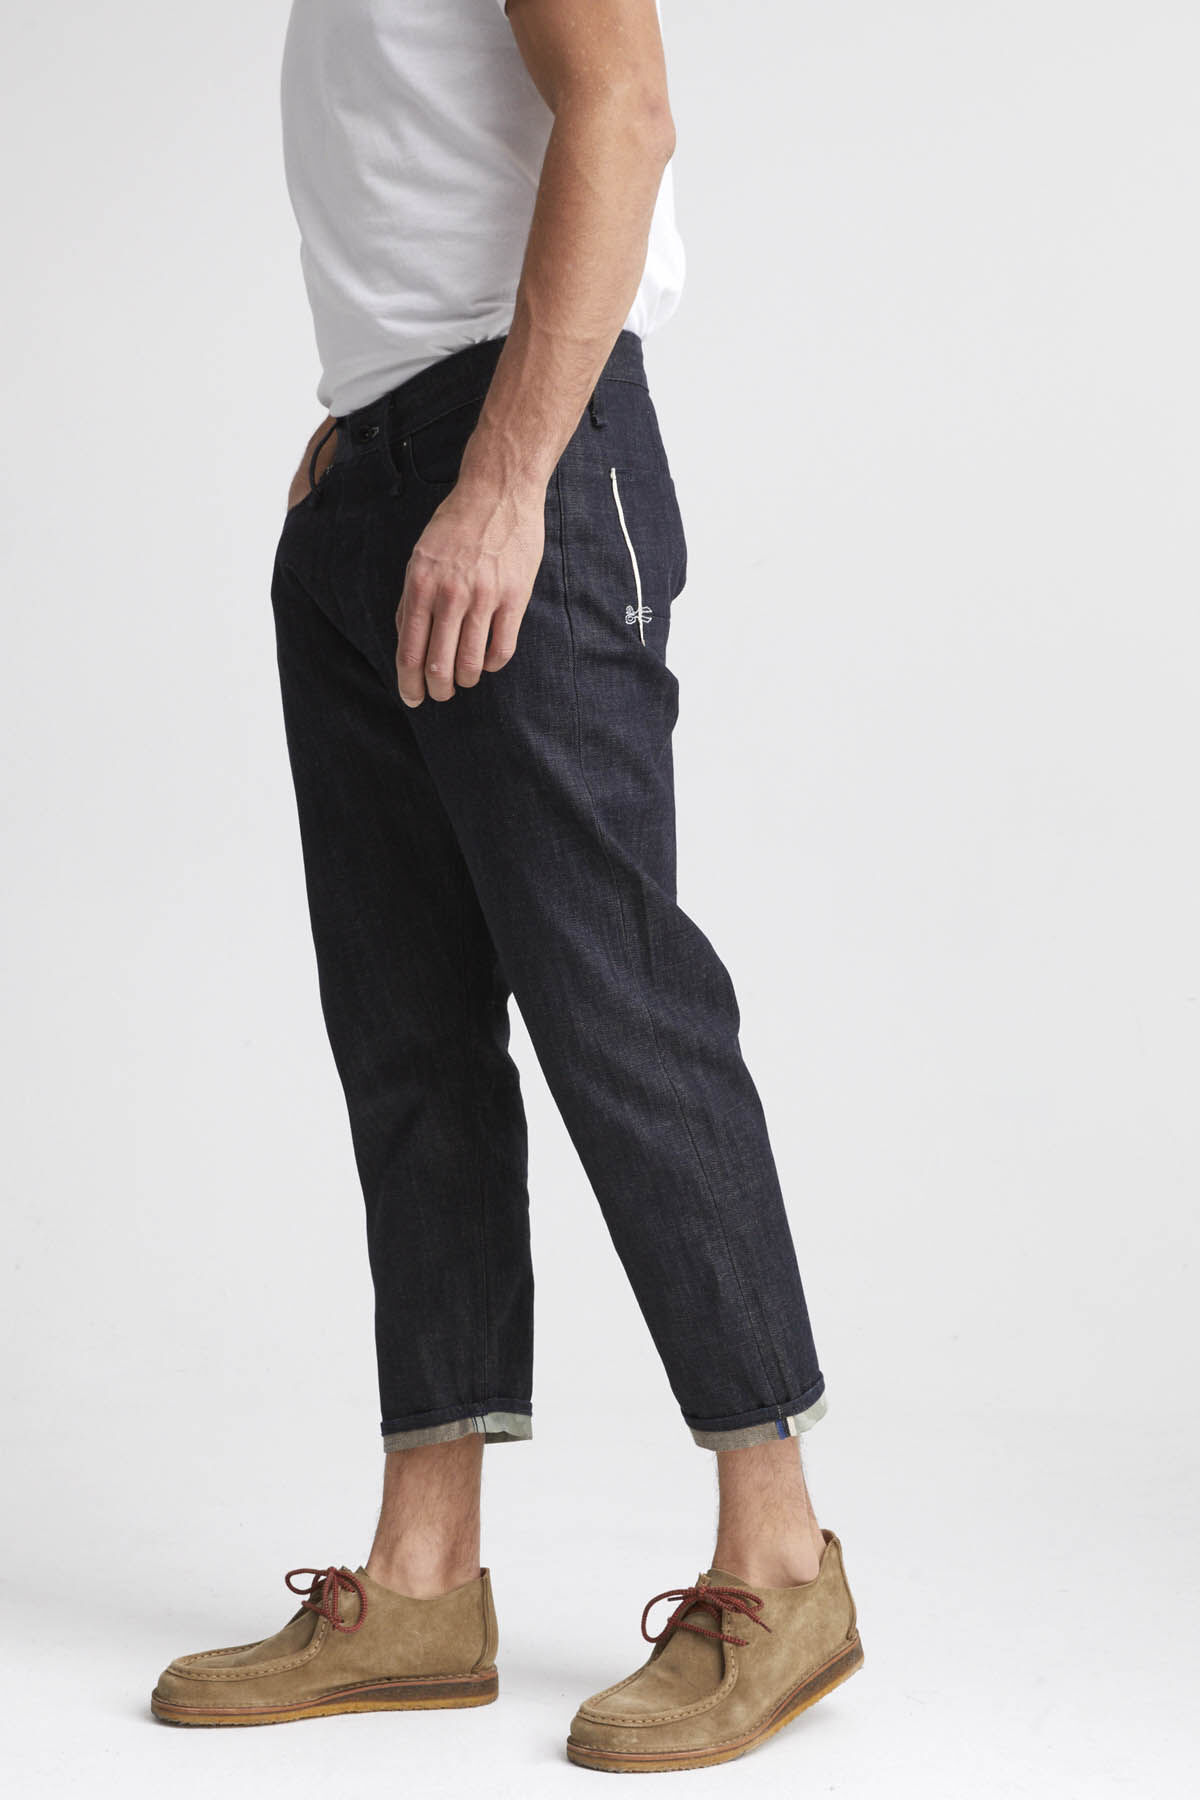 CROP Raw Selvedge Denim - Low Crotch, Cropped Fit